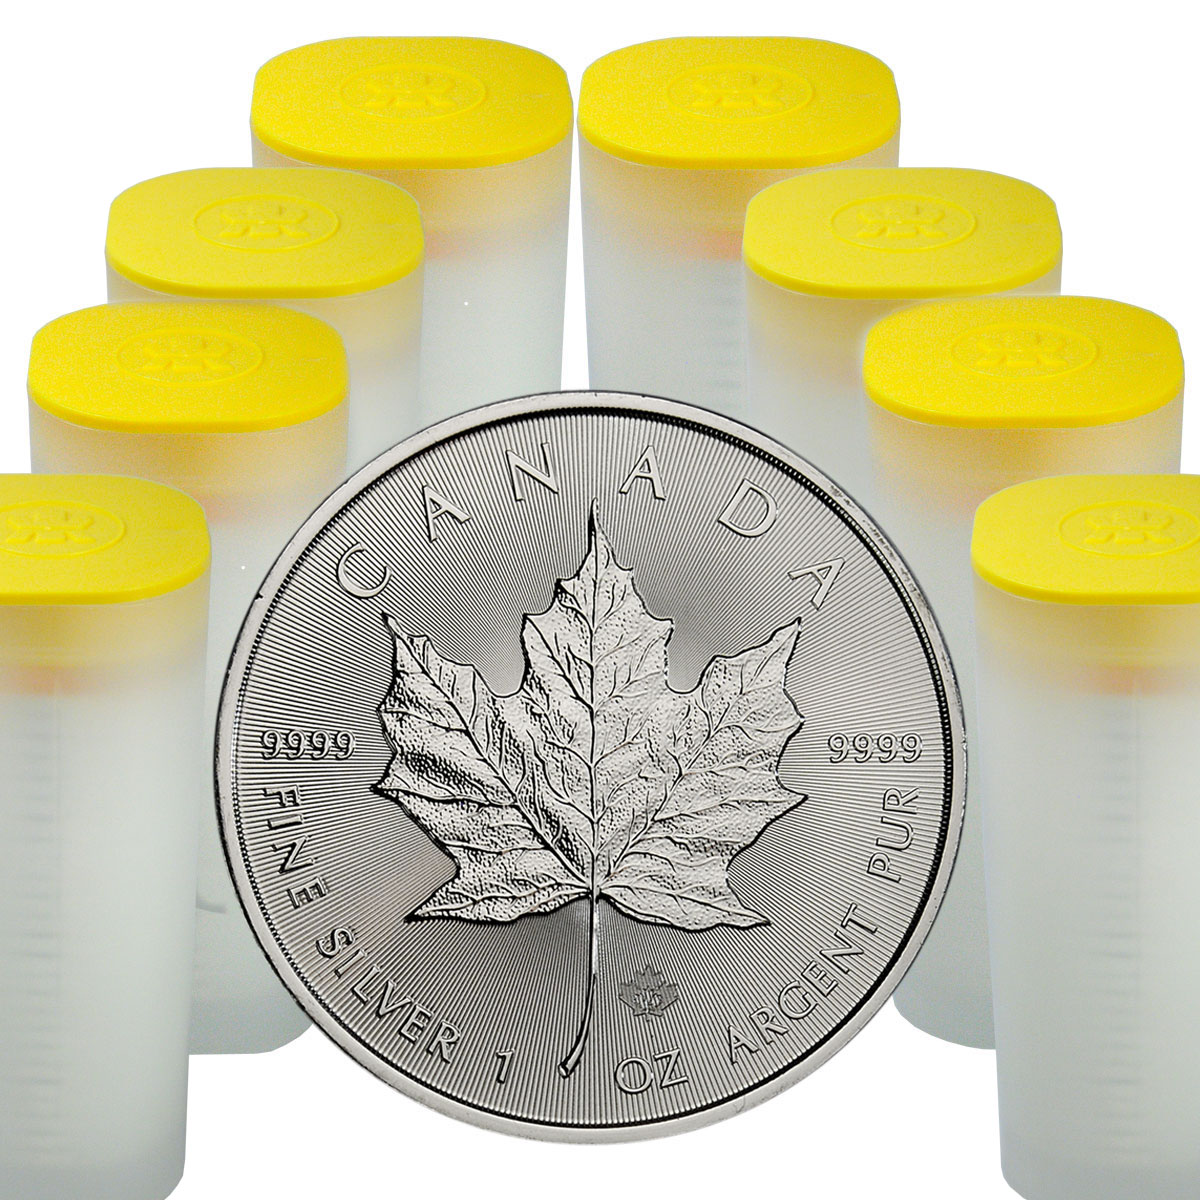 8 Rolls of 25 (200 Coins) - 2018 Canada 1 oz Silver Maple Leaf $5 Coins GEM BU